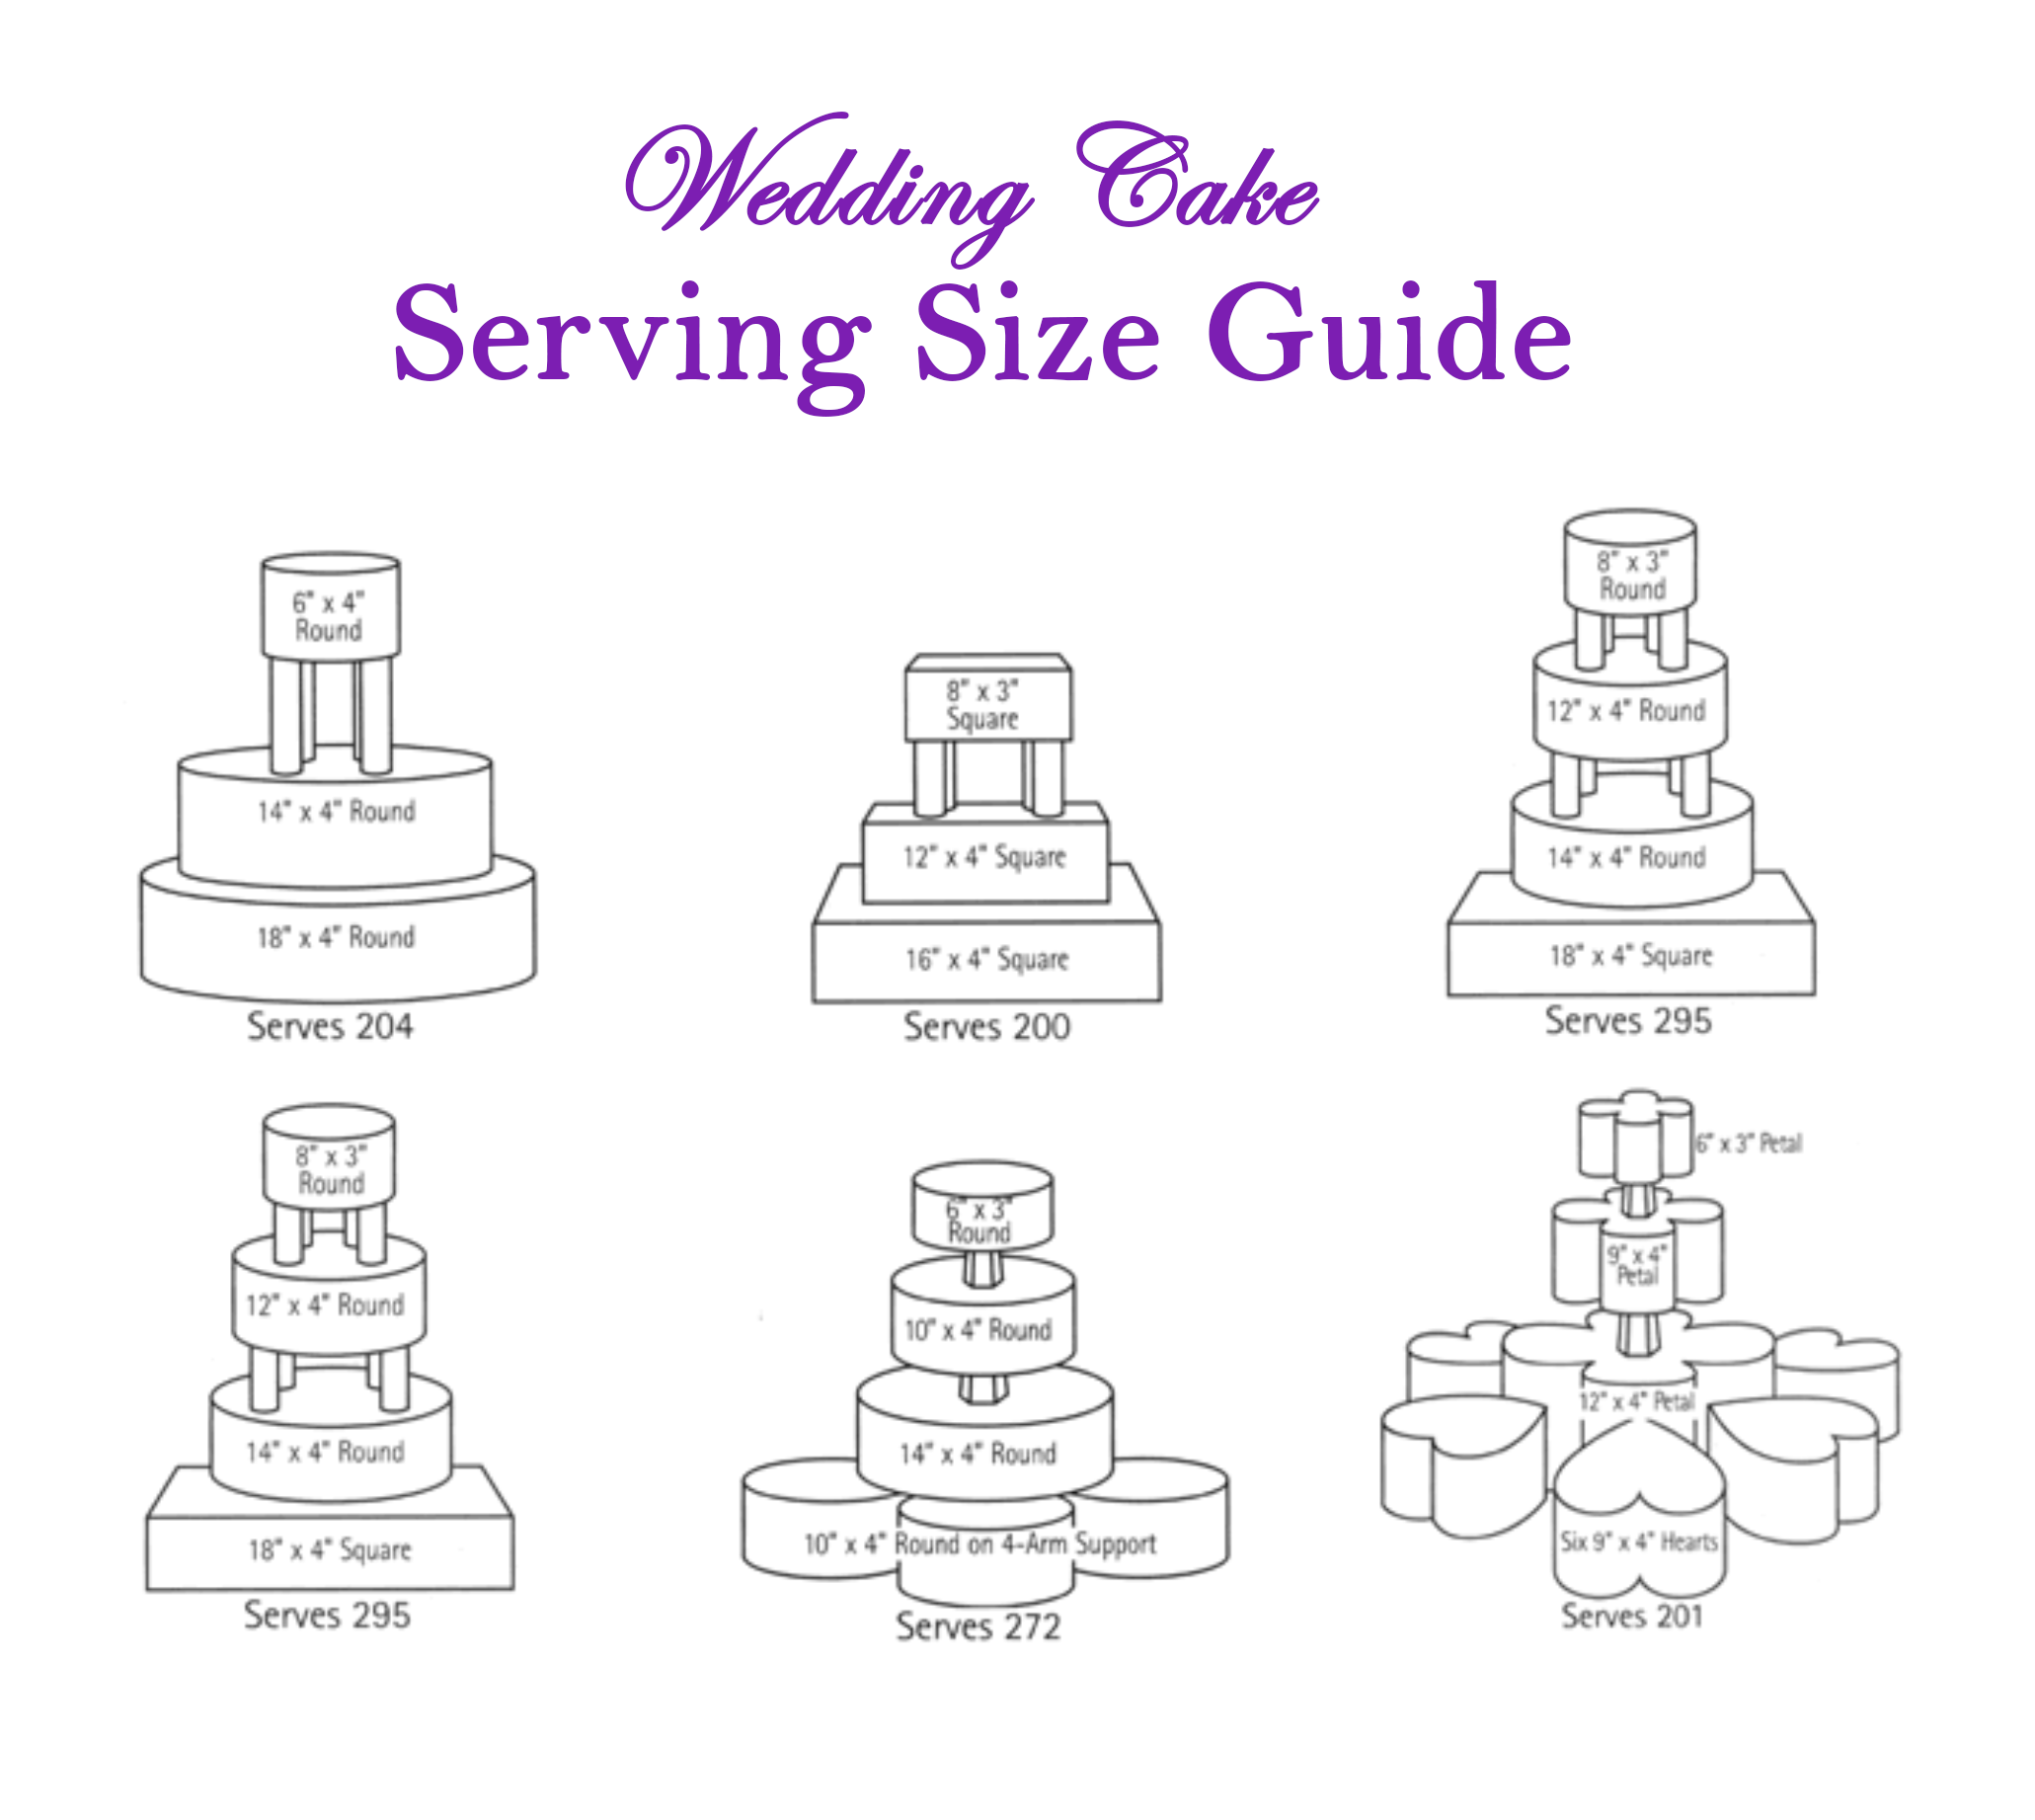 wedding cake serving size wedding cake serving size guide from www wilton cake 24308